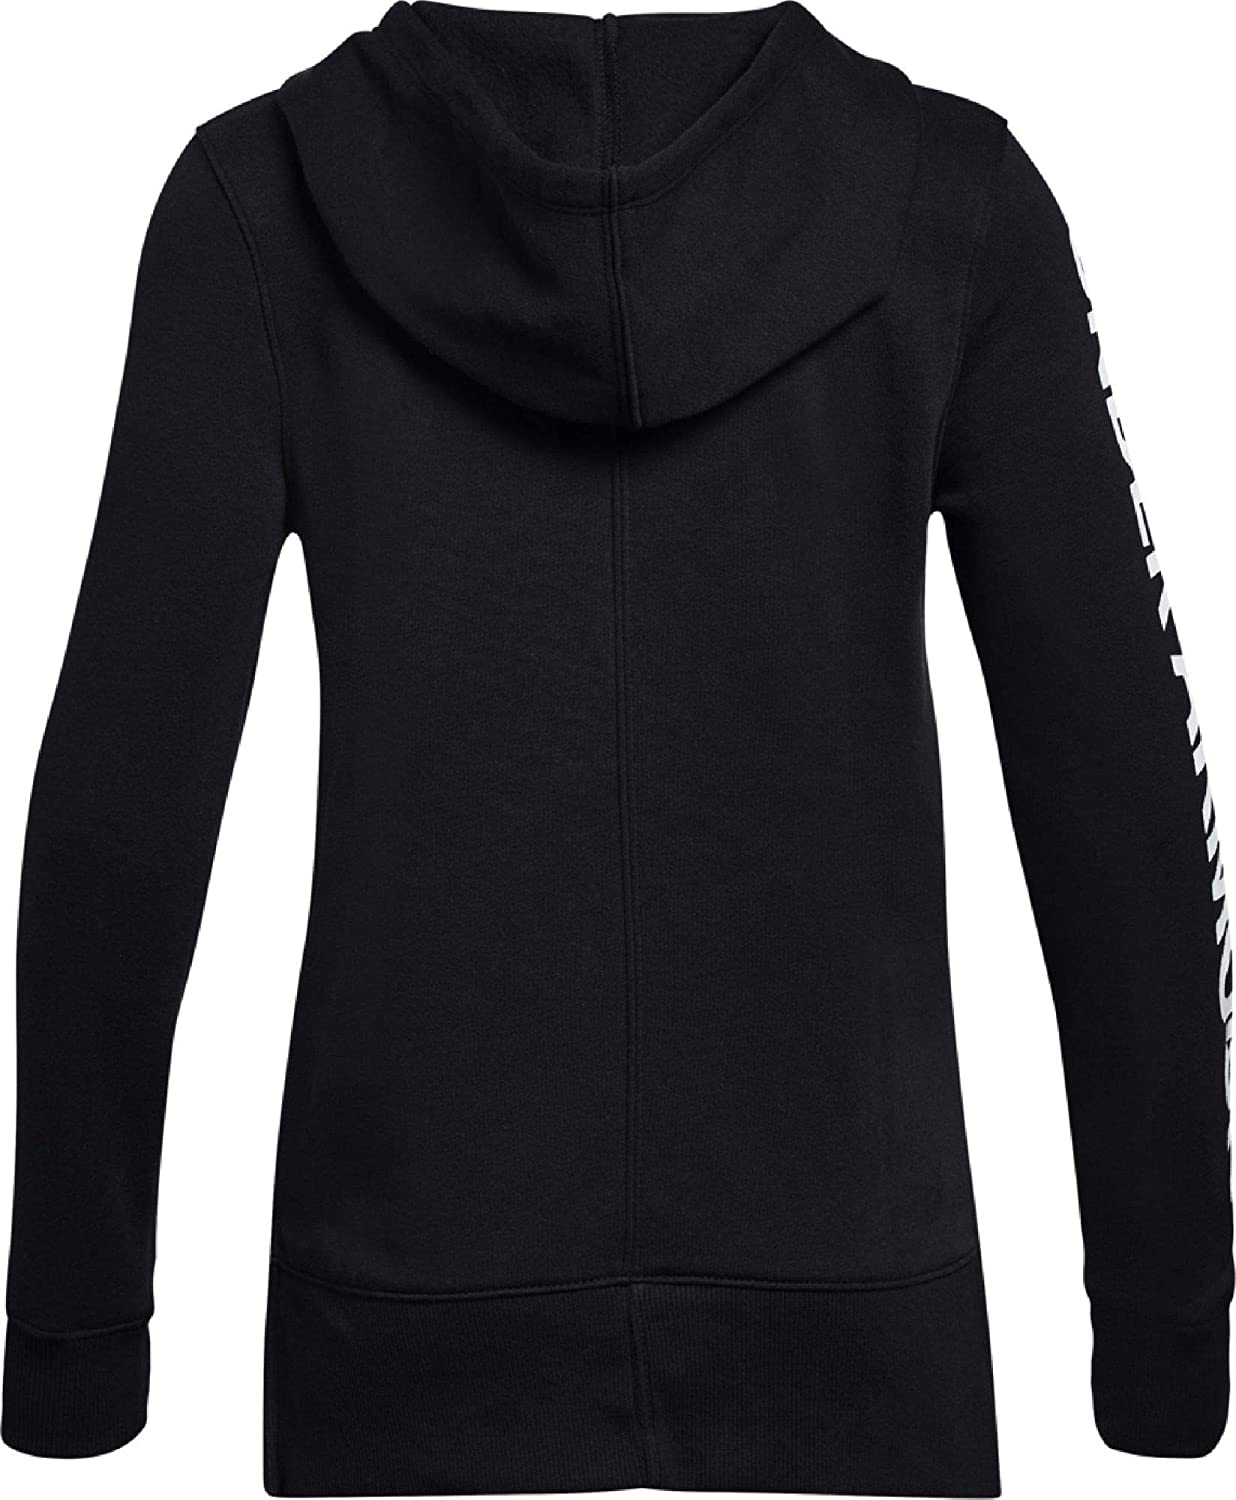 Black//Silver Youth X-Large Under Armour Rival Full Zip Warm-up Top